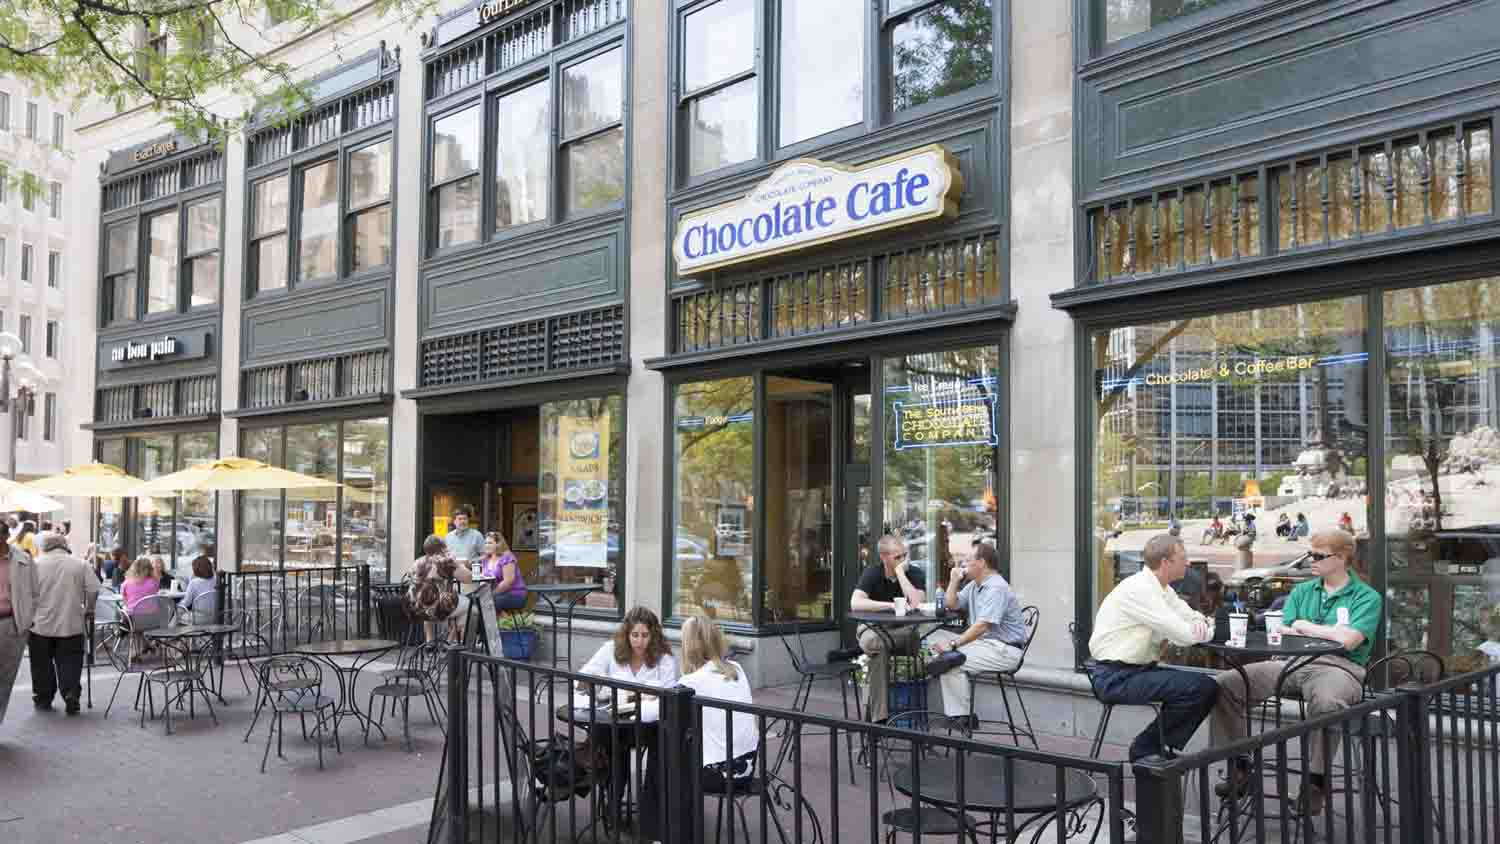 The South Bend Chocolate Company/Chocolate Cafe 1